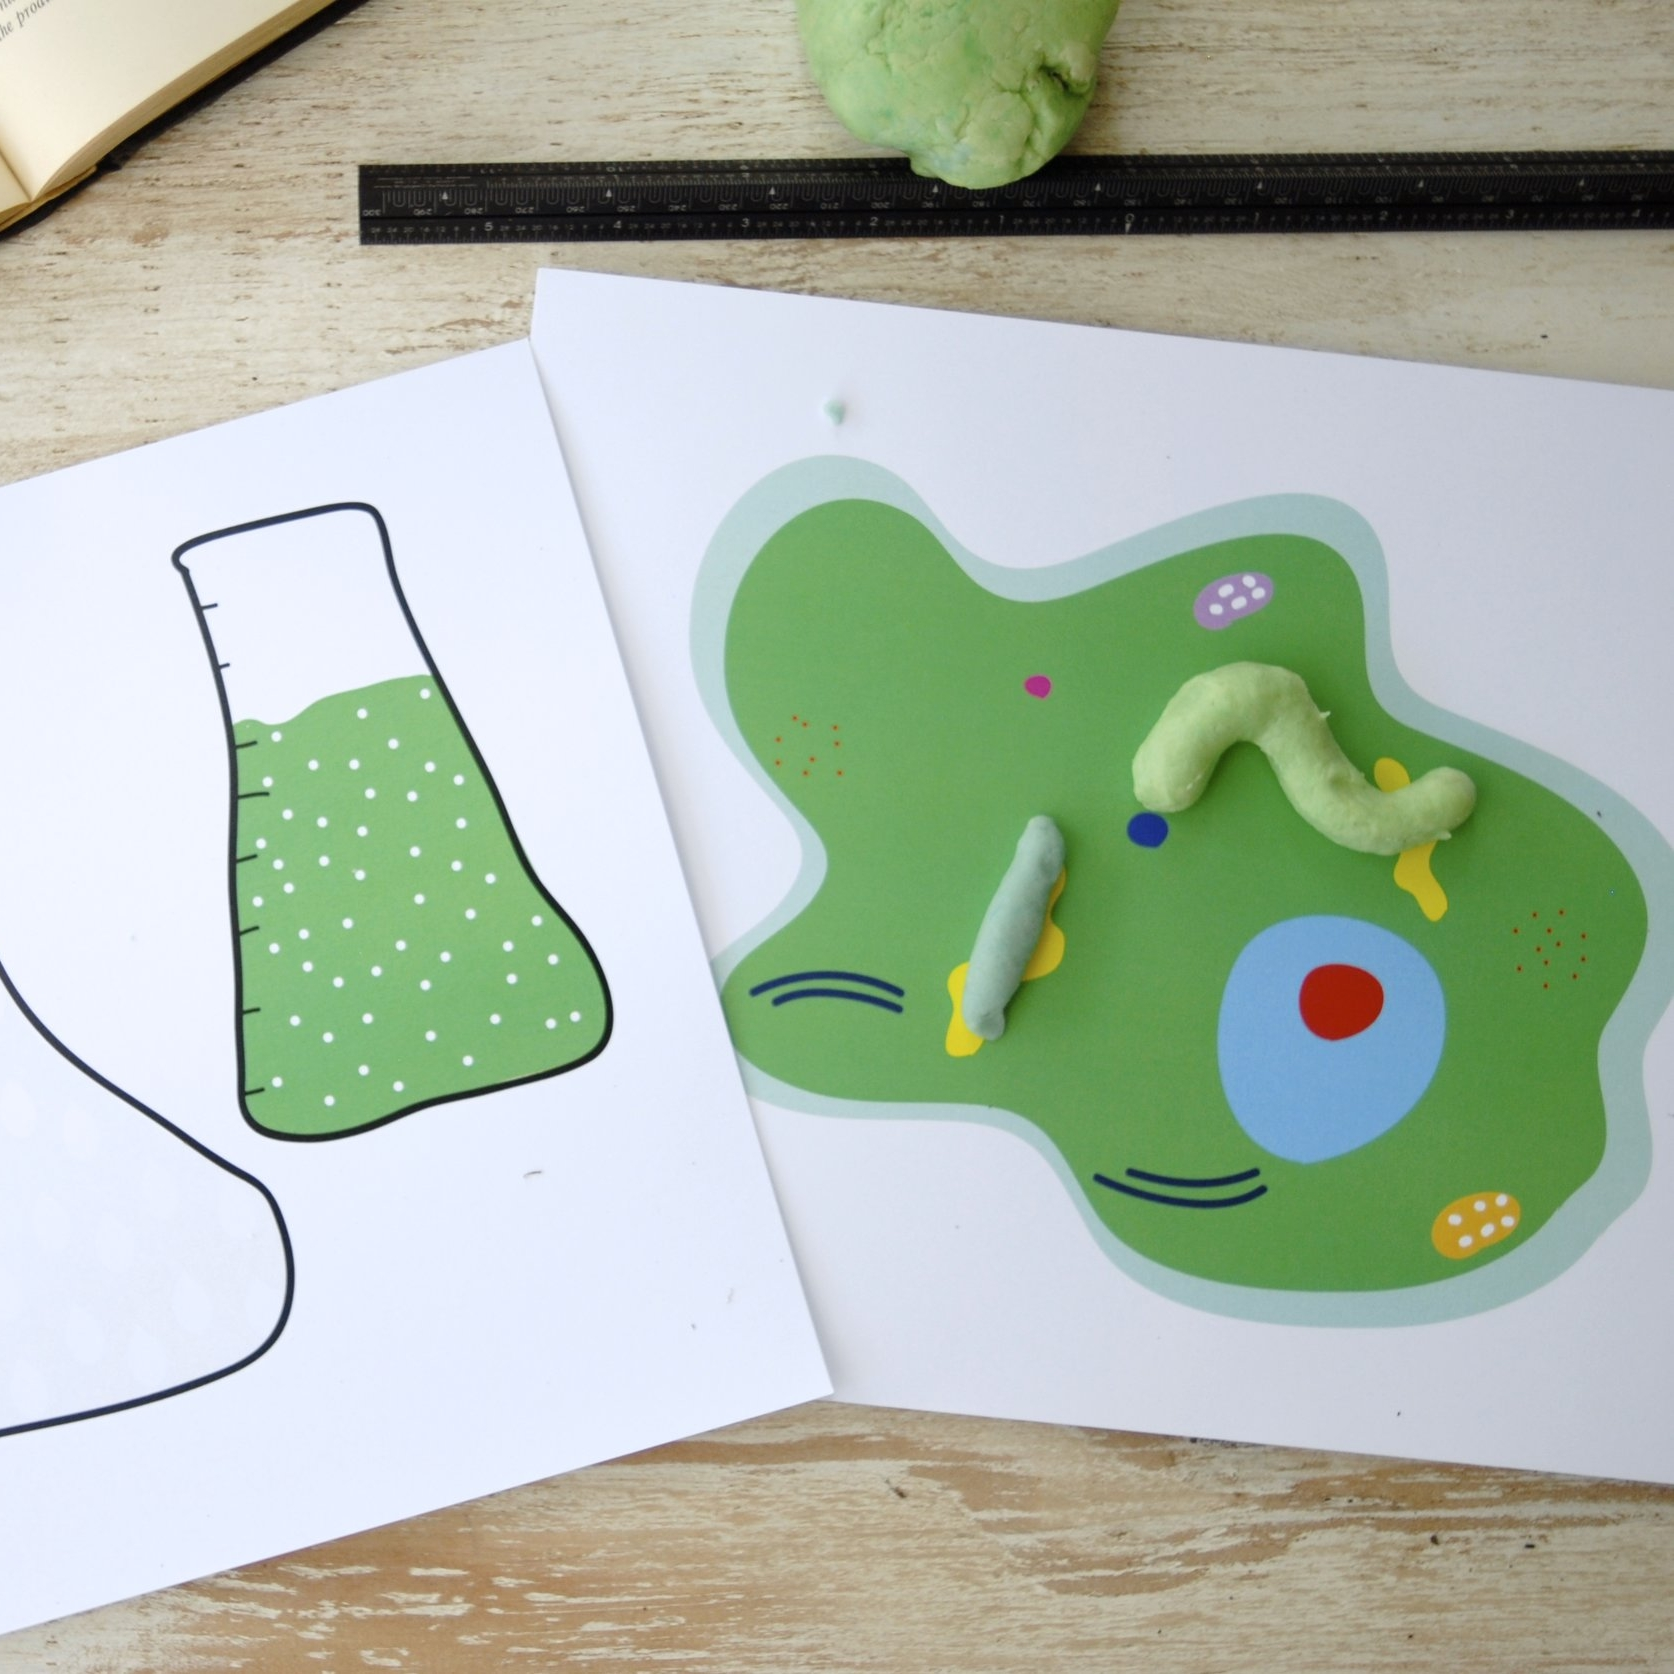 bEAKER AND cELL pRINTABLE - Play dough and craft mats